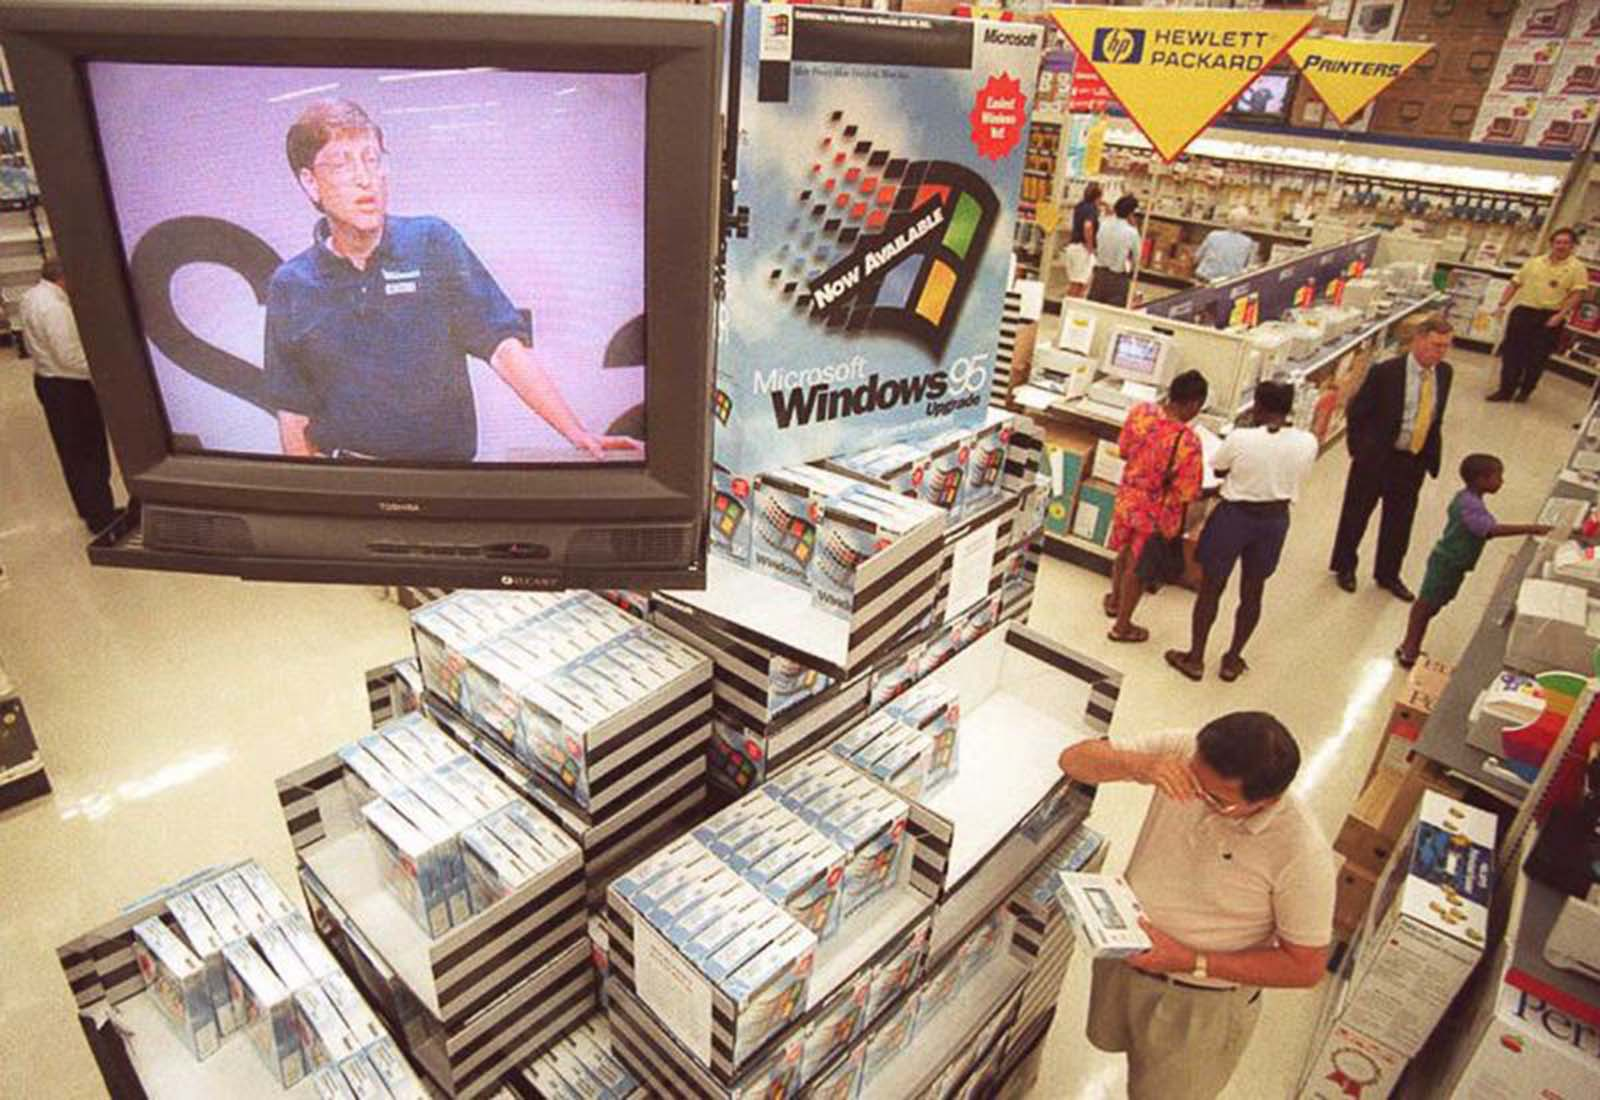 Microsoft CEO Bill Gates speaks on a television above a Windows 95 display at a store in Vienna, Virginia.